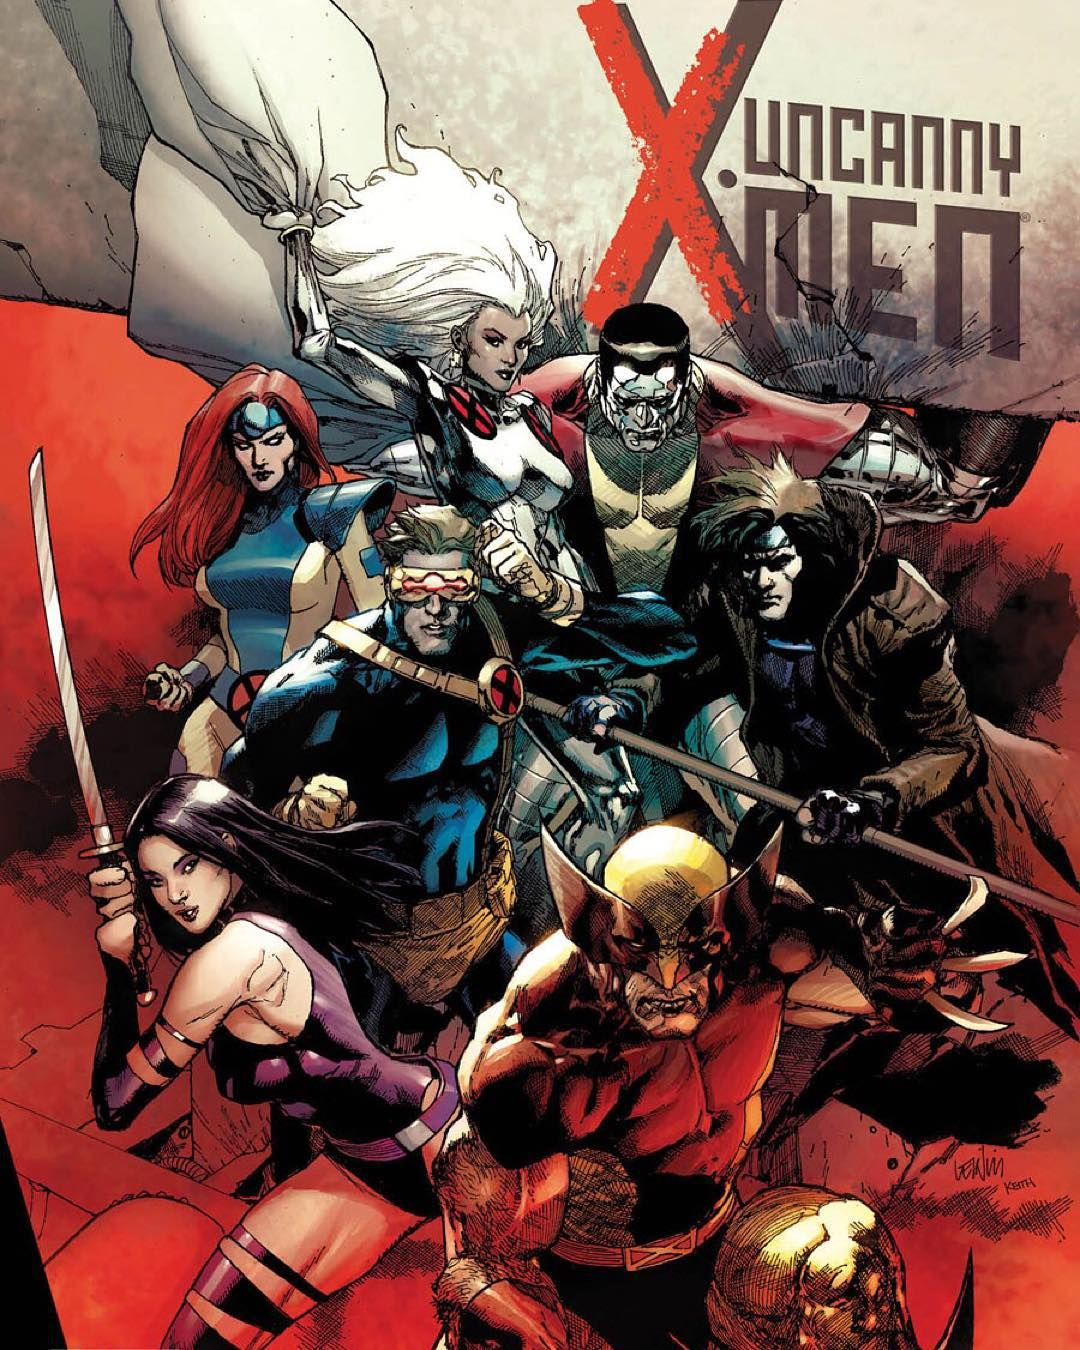 Hella Fresh Leinil Yu S X Men 600 Variant Cover Marvel Final Set The Release Date For Nov 4 For This Issue Just 6 Month X Men Comics Comic Art Community